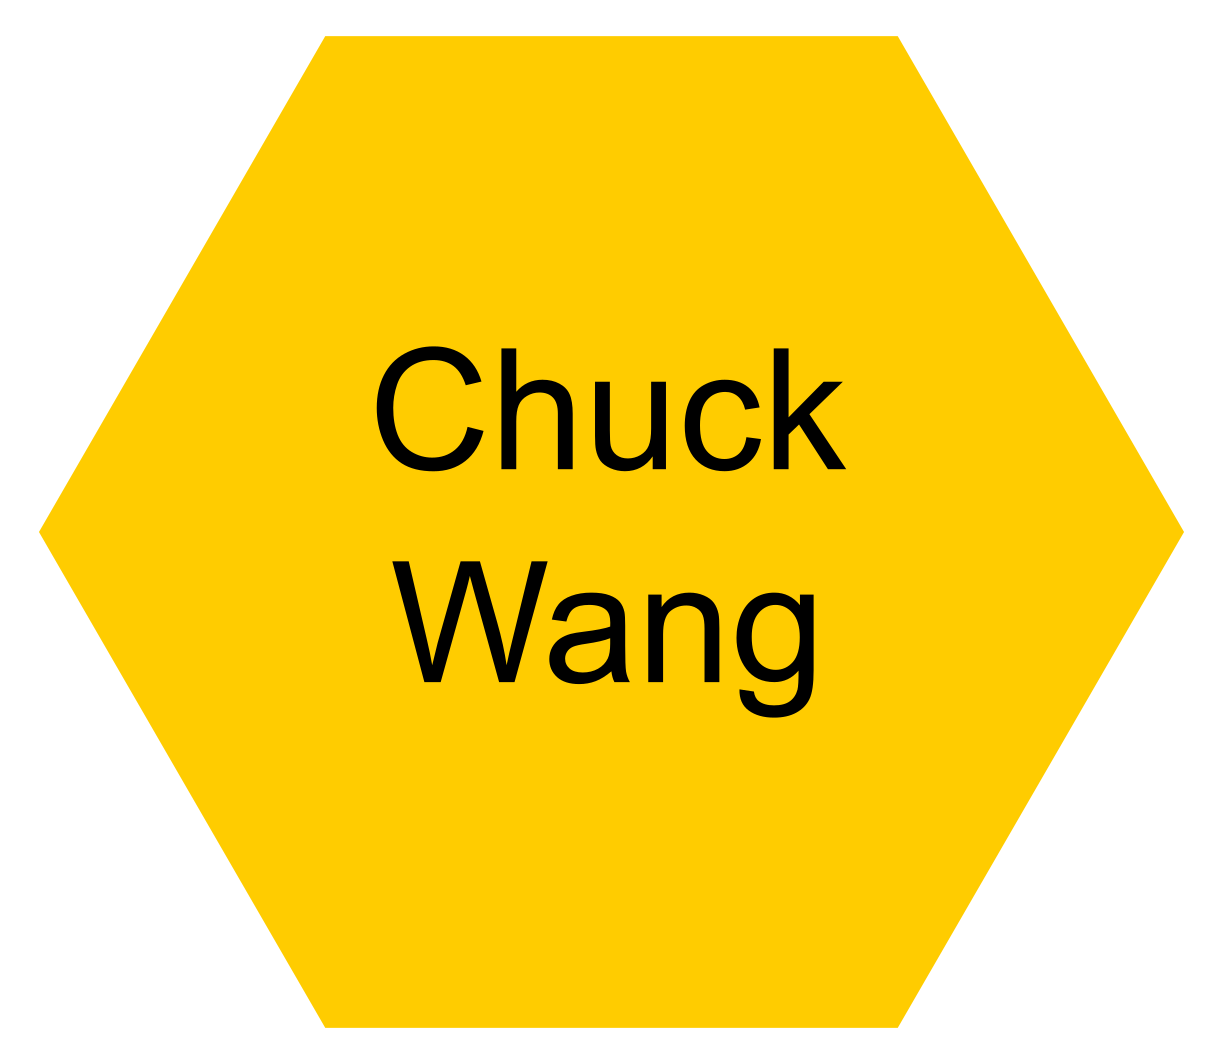 Dr. Chun-Chin (Chuck) Wang (University of Exeter: Post-Doctoral Researcher) - Click this icon to reveal their contact details.